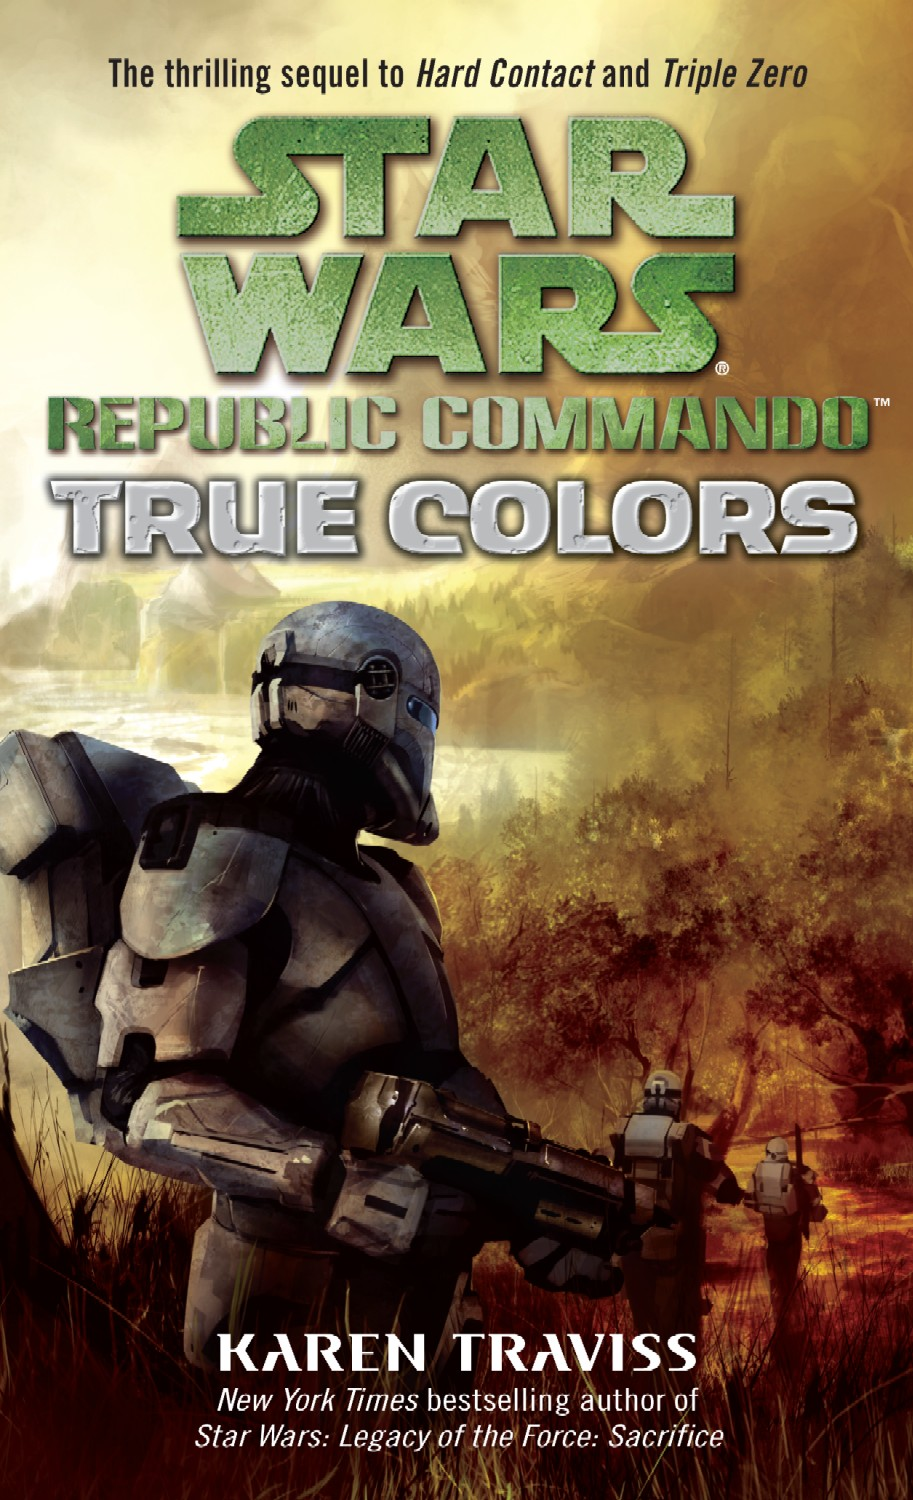 Republic Commando: True Colors | Wookieepedia | FANDOM powered by Wikia